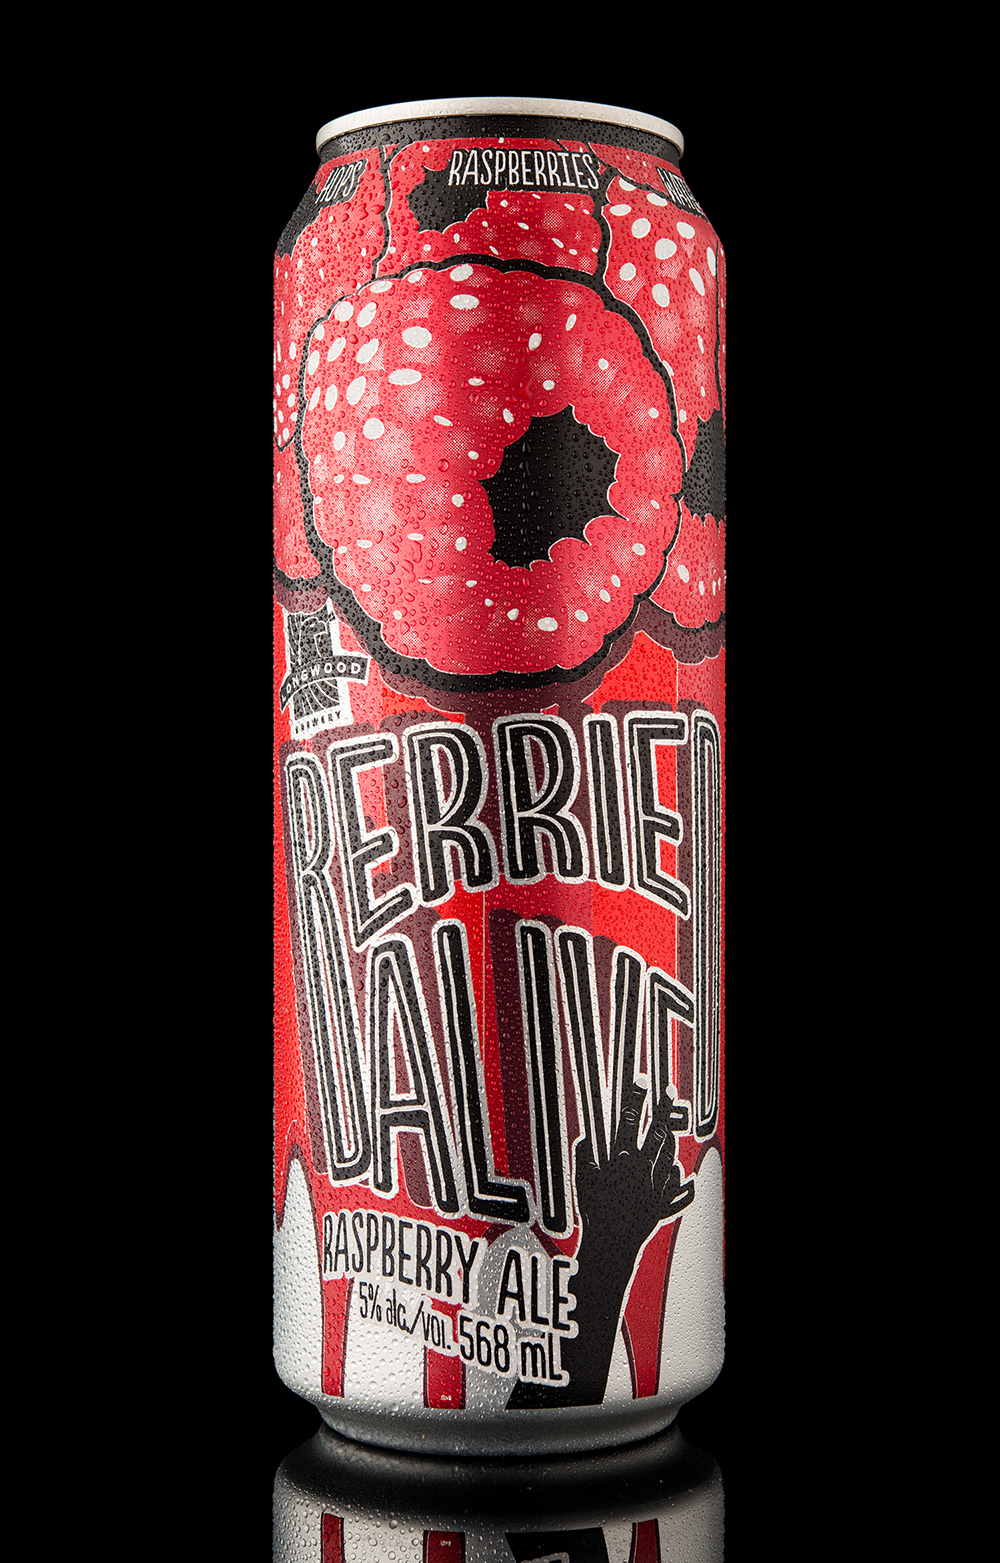 Berried Alive Raspberry Ale